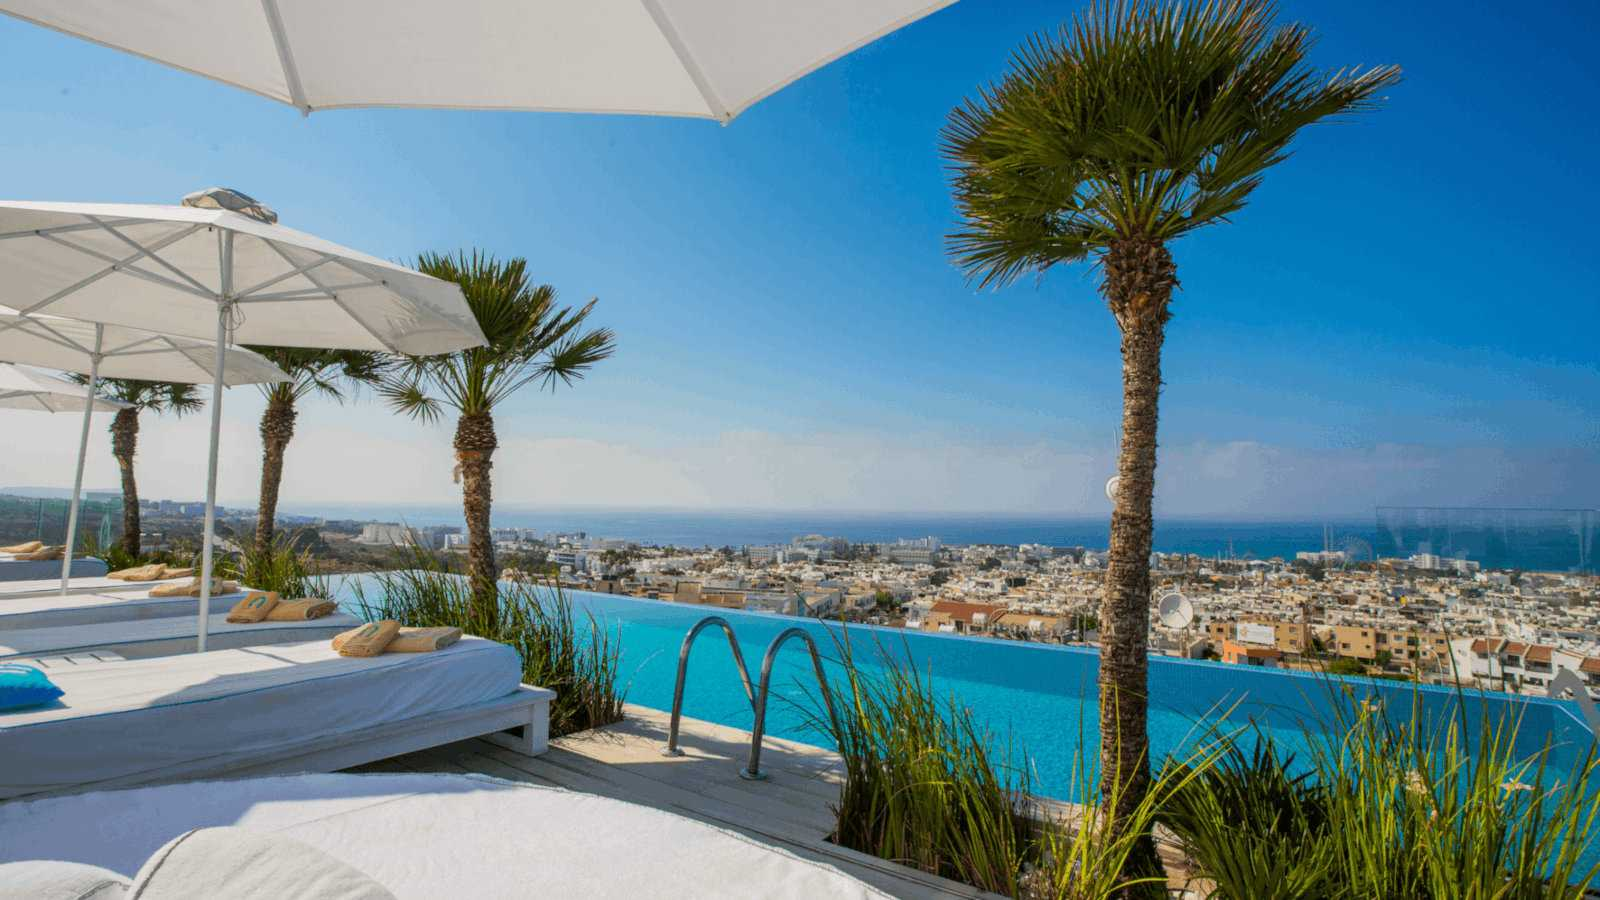 Hotel Napa Suites are adults-only and have some of the best views of Cyprus from the rooftop infinity pool